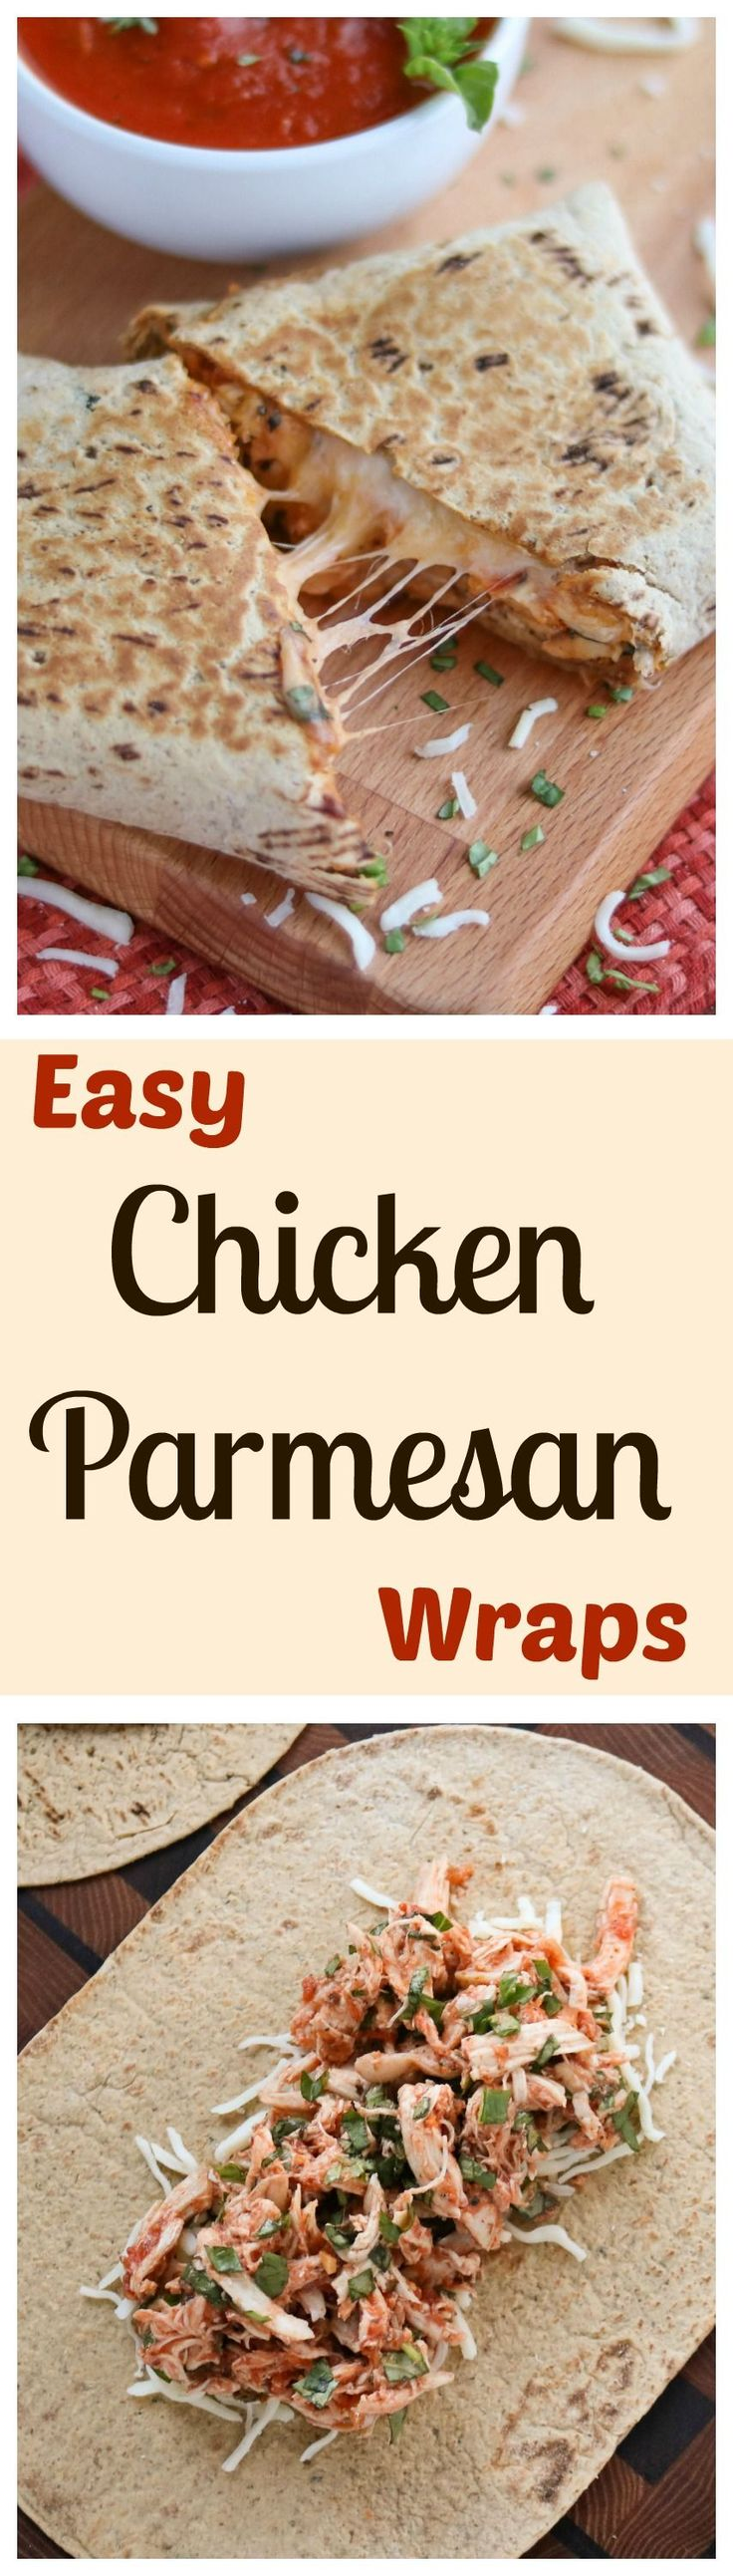 These Easy Chicken Parmesan Wraps are a super-fast, 15-minute meal! Make them…